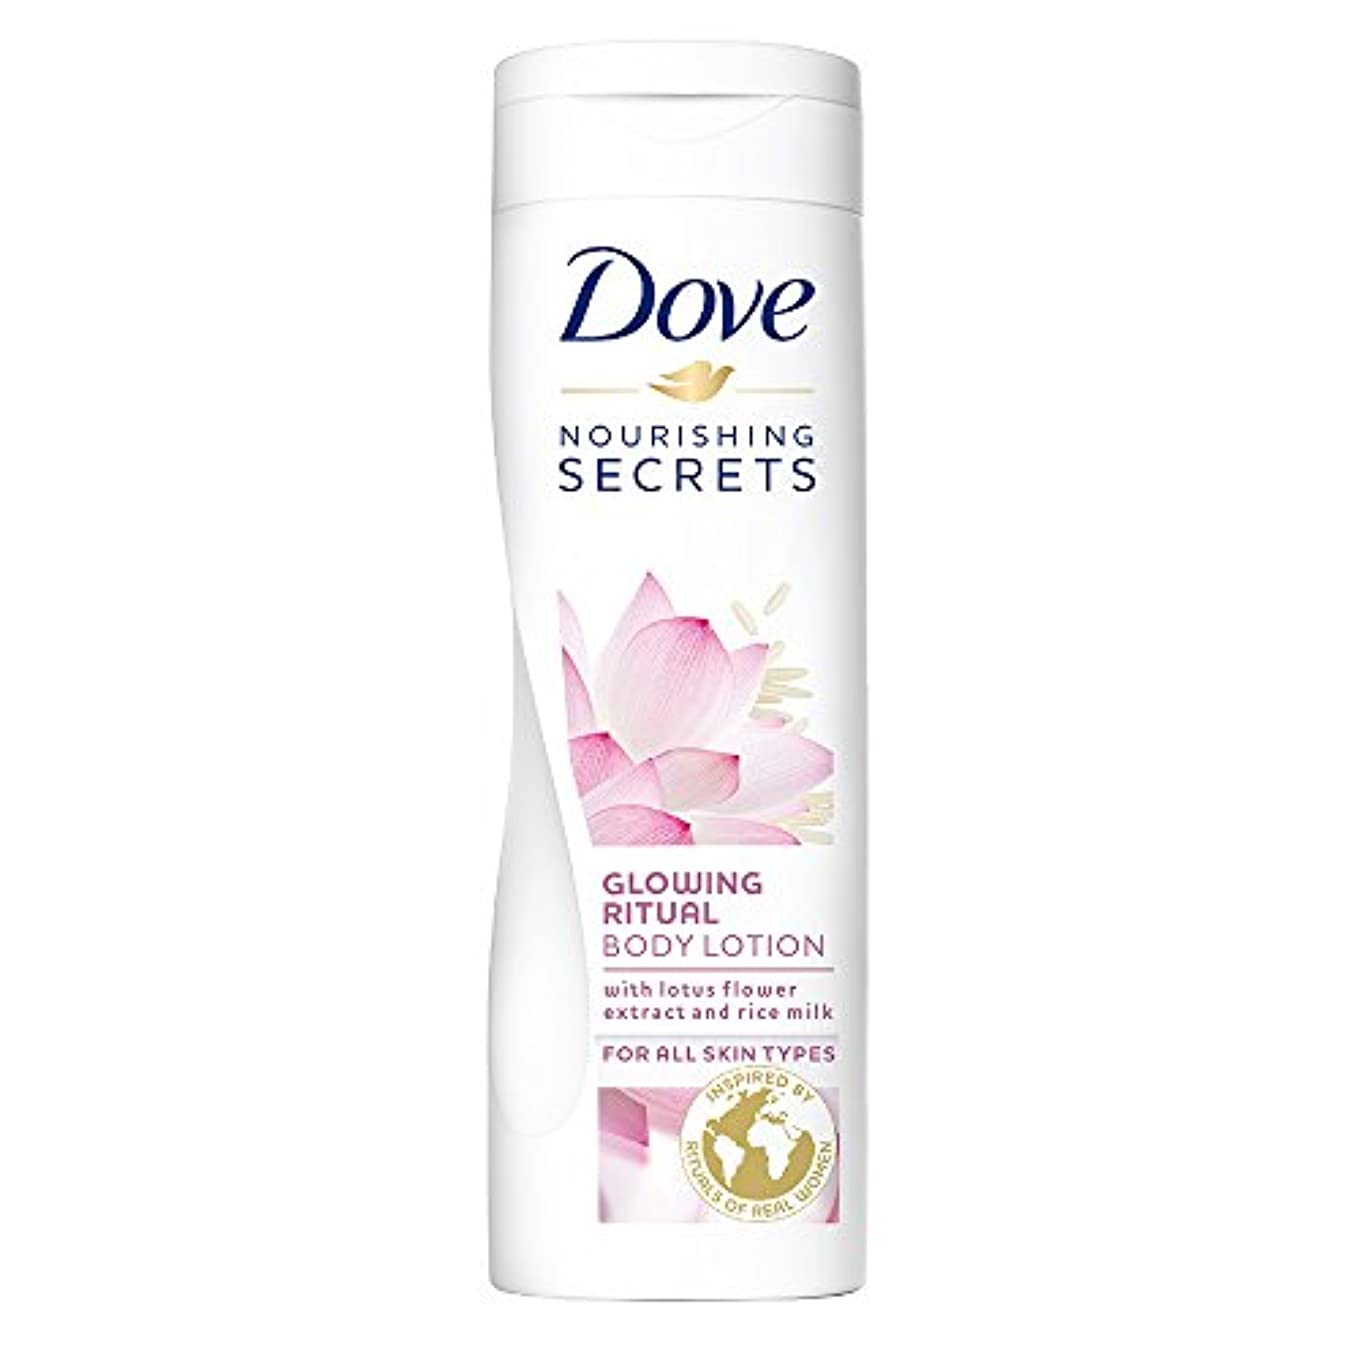 Dove Glowing Ritual Body Lotion, 400ml (Lotus flower and rice milk)